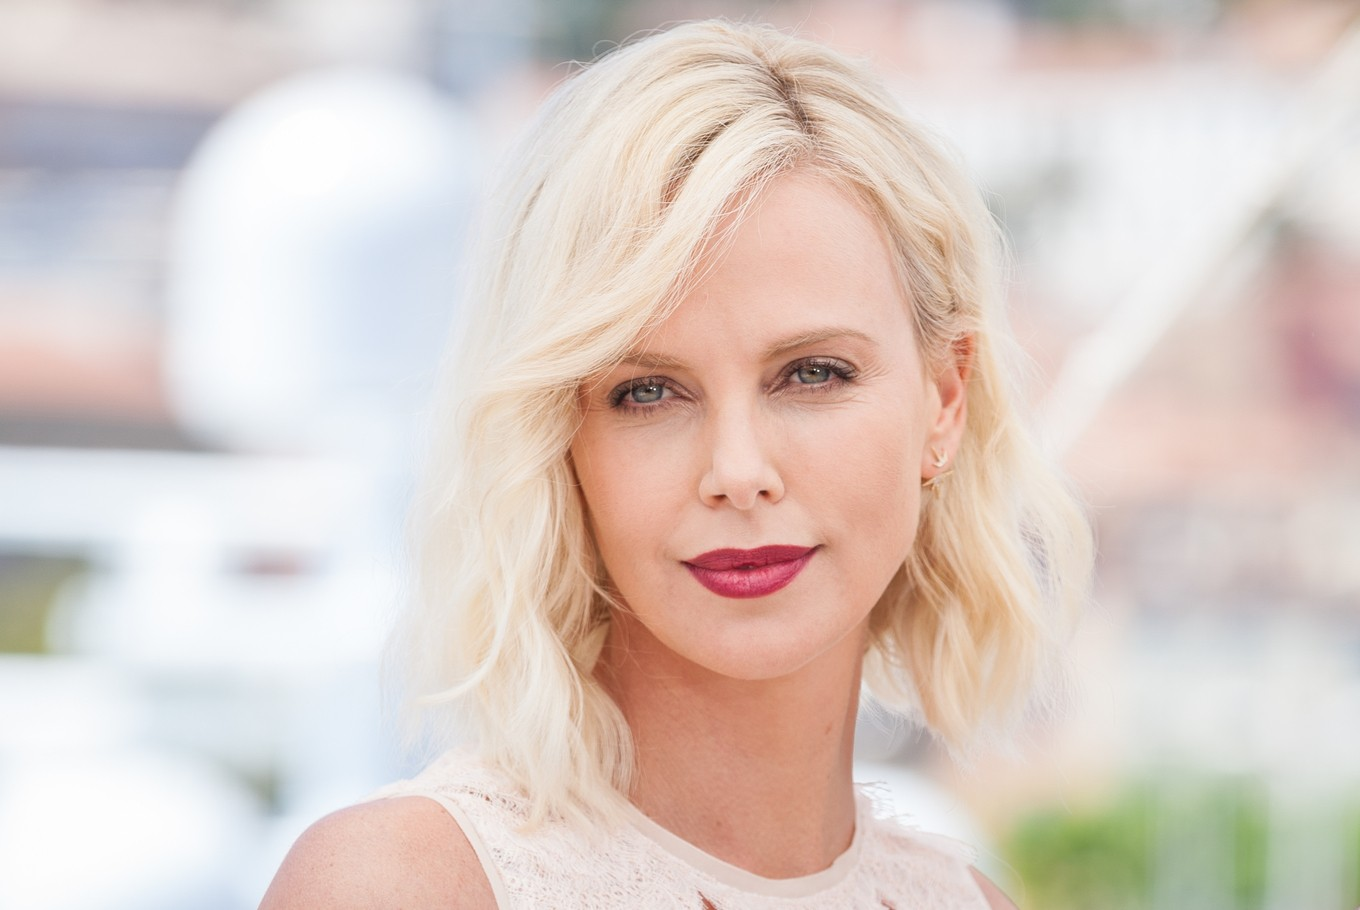 Actress Charlize Theron unveils stars joining her fight on domestic abuse